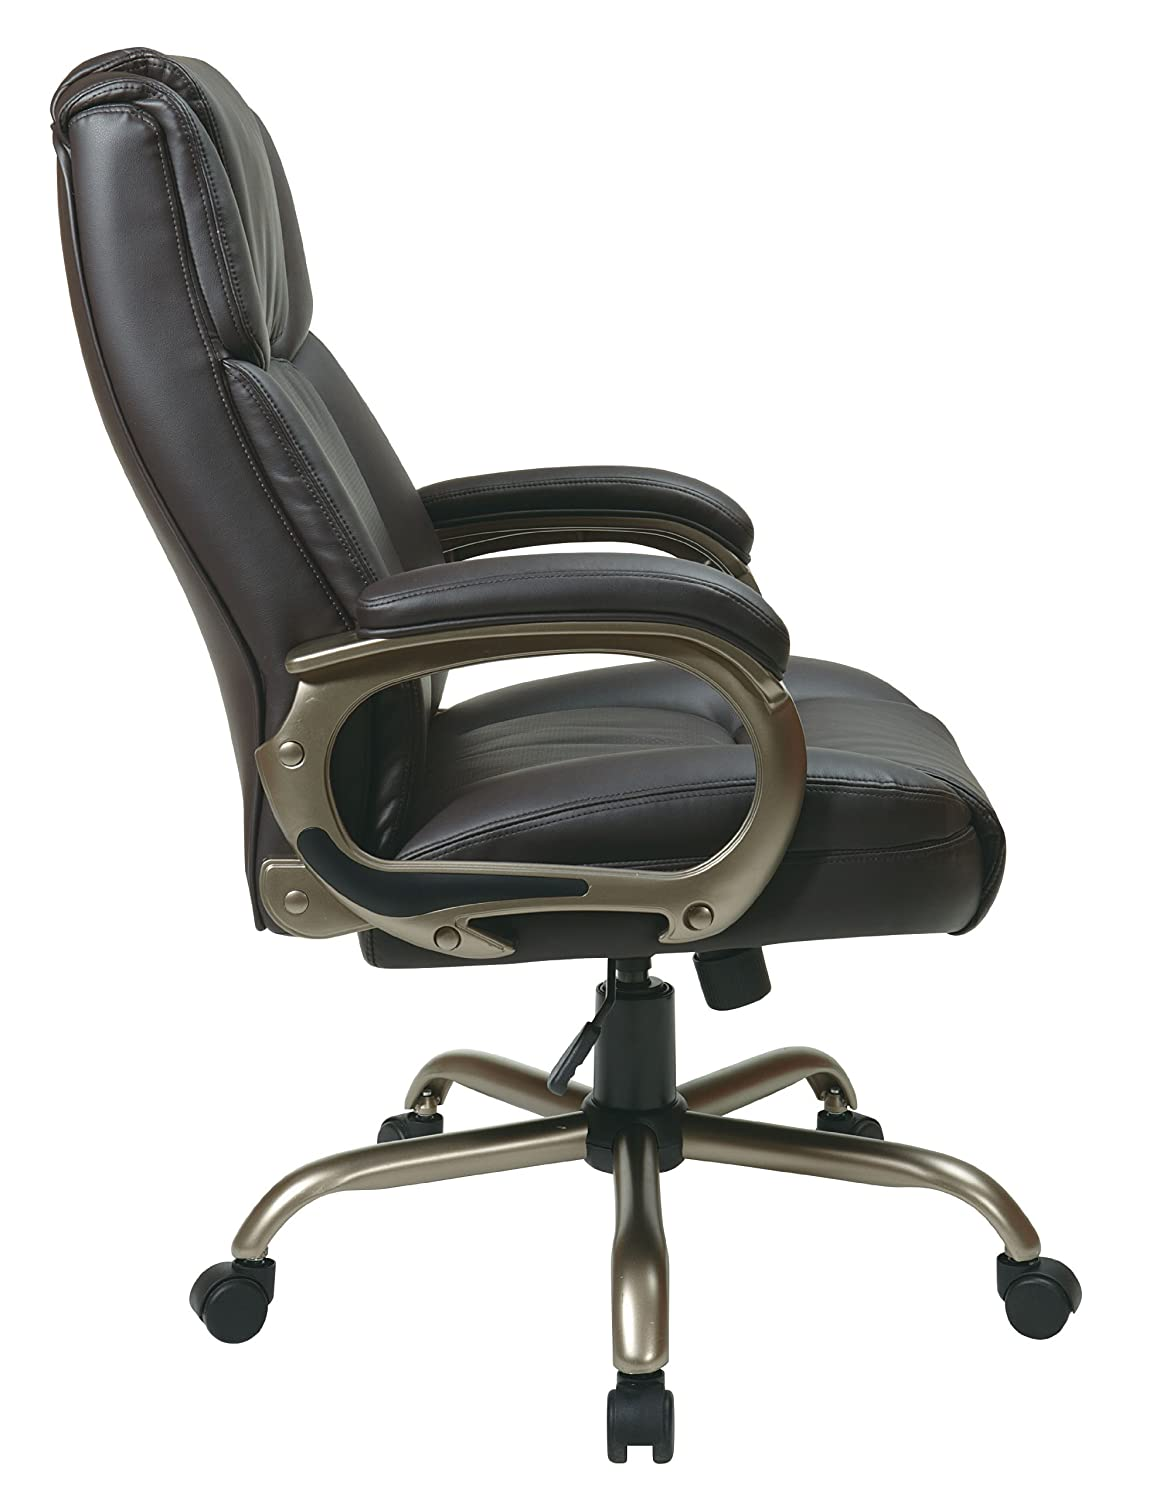 Plus Size Office Chairs Plus Size Office Chairs Up To 300 LBS 350 LBS Office Chairs For